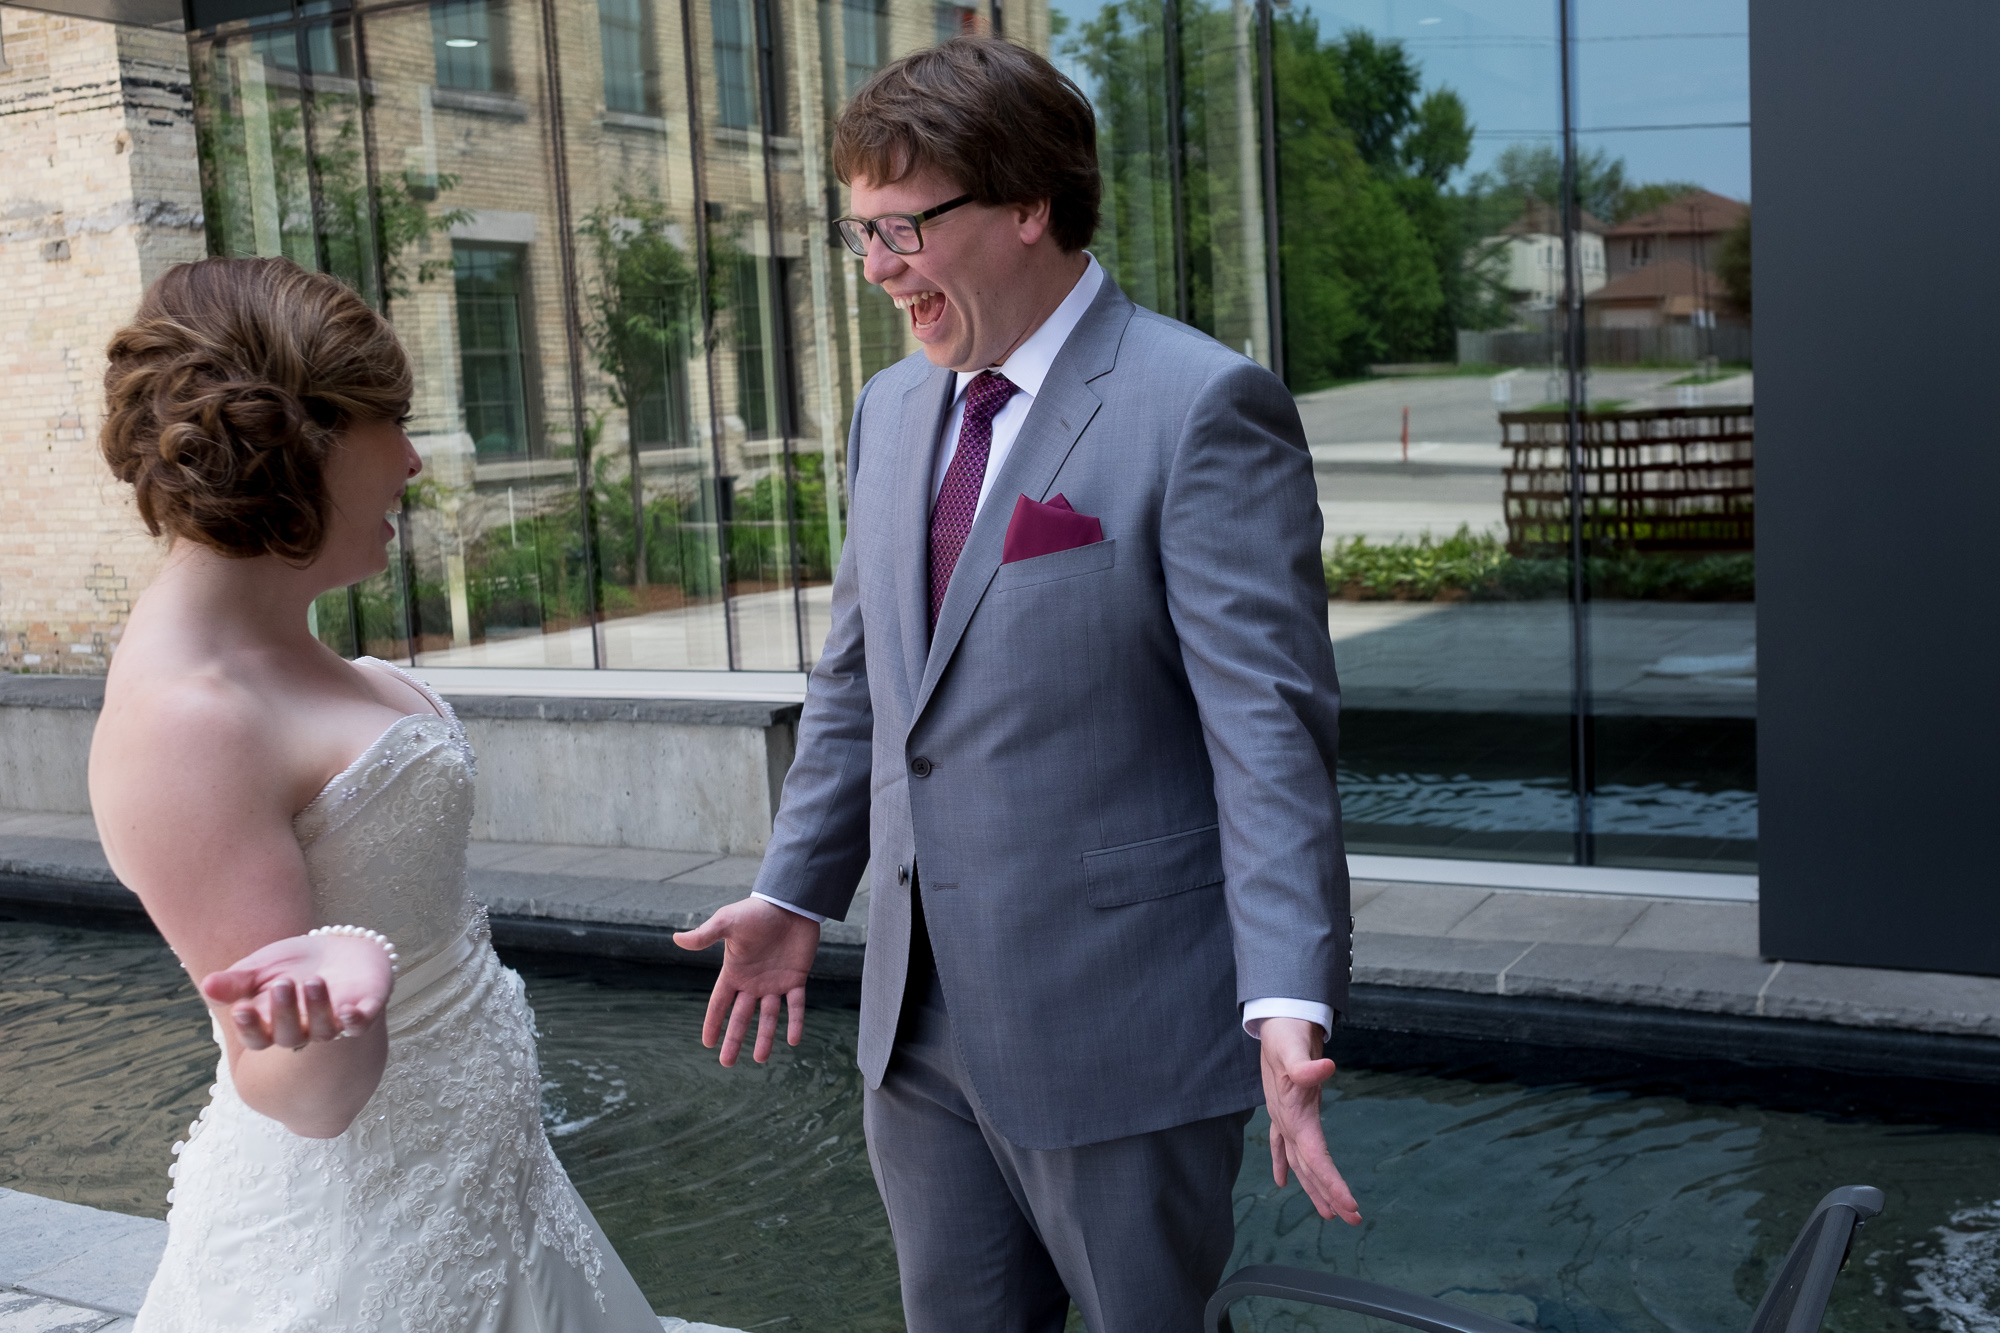 Ian reacts to seeing Jennifer for the first time during their first look before their wedding in Waterloo.